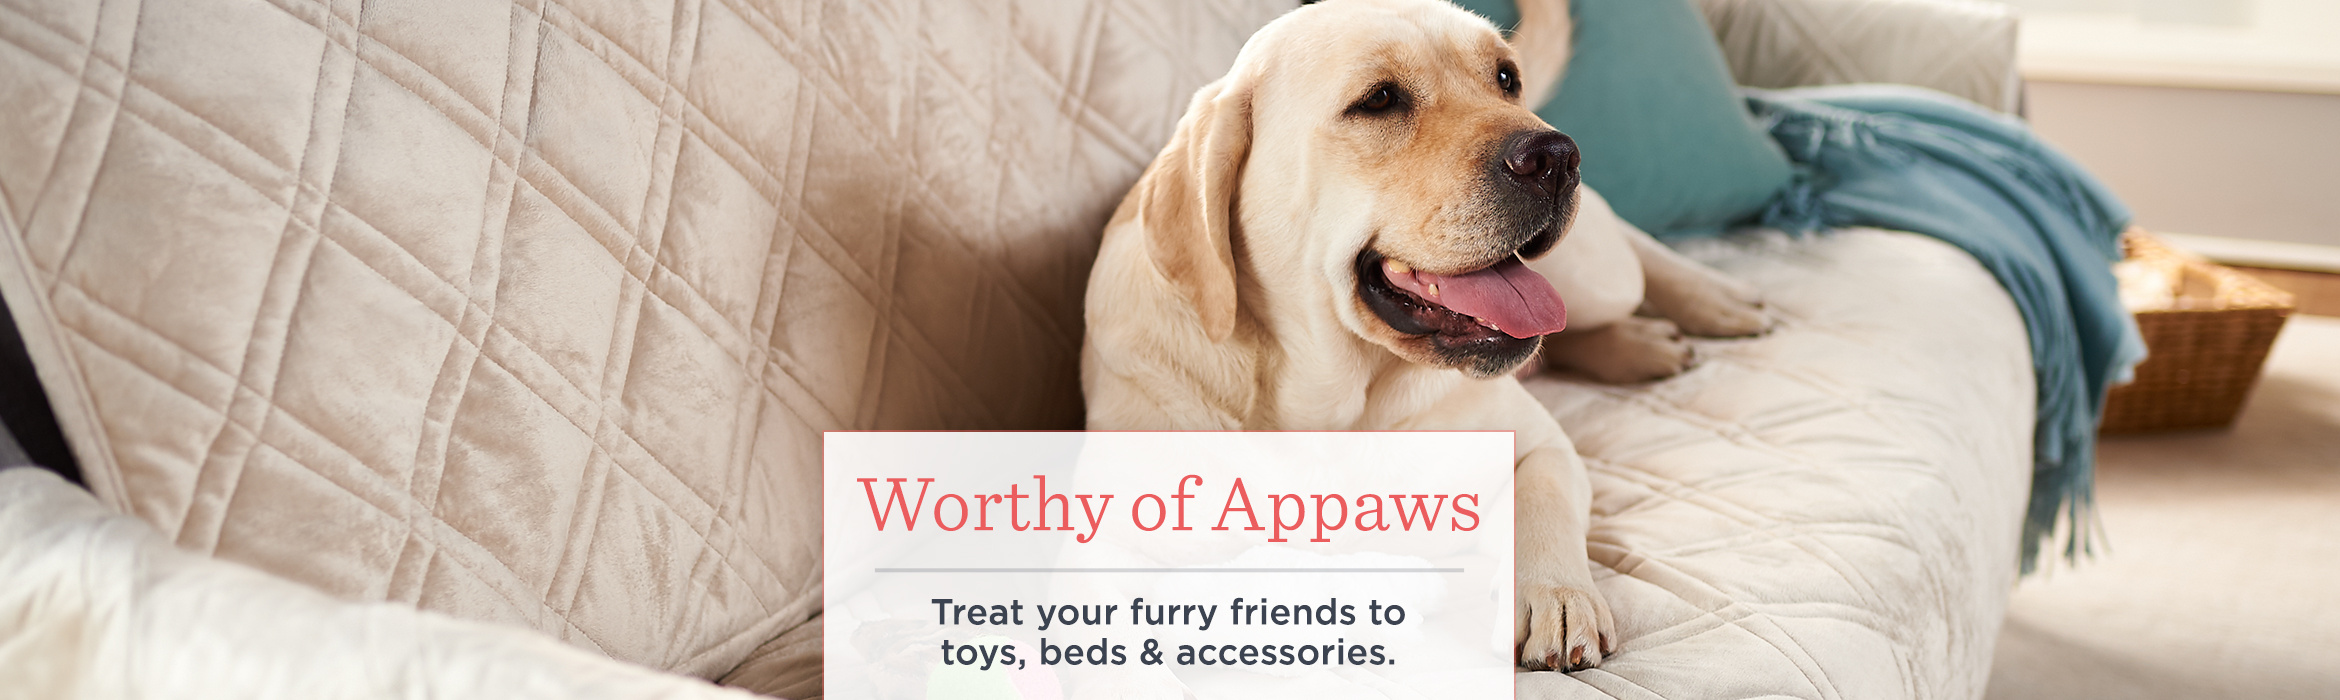 a752da427494 Worthy of Appaws - Treat your furry friends to toys